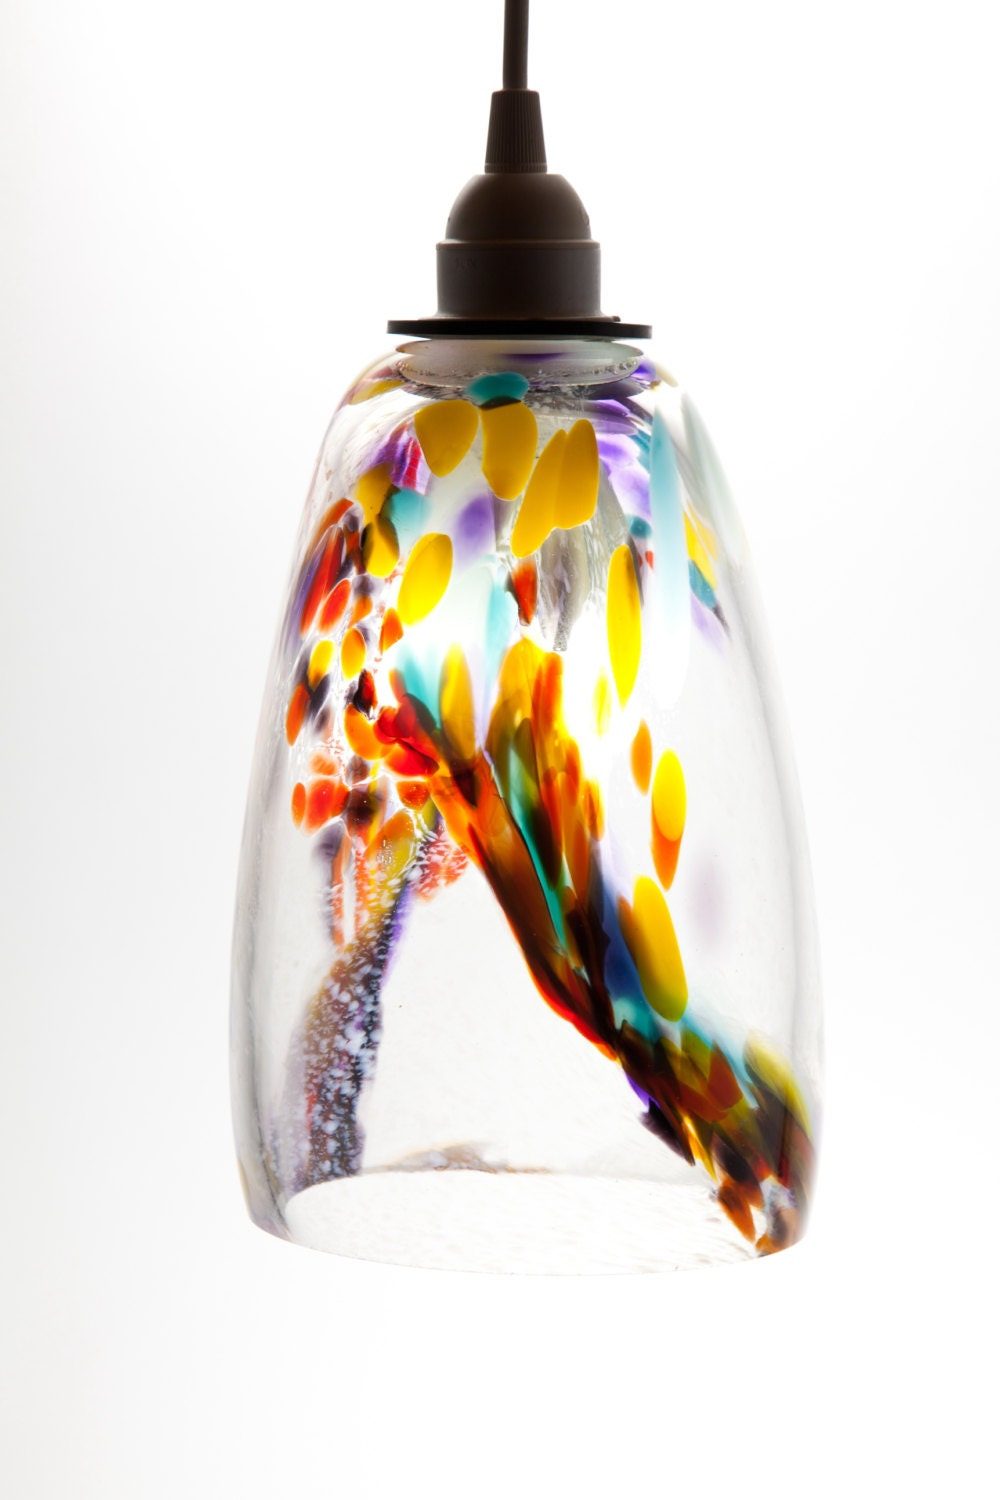 hand blown glass hanging light pendant fixture in by glassometry